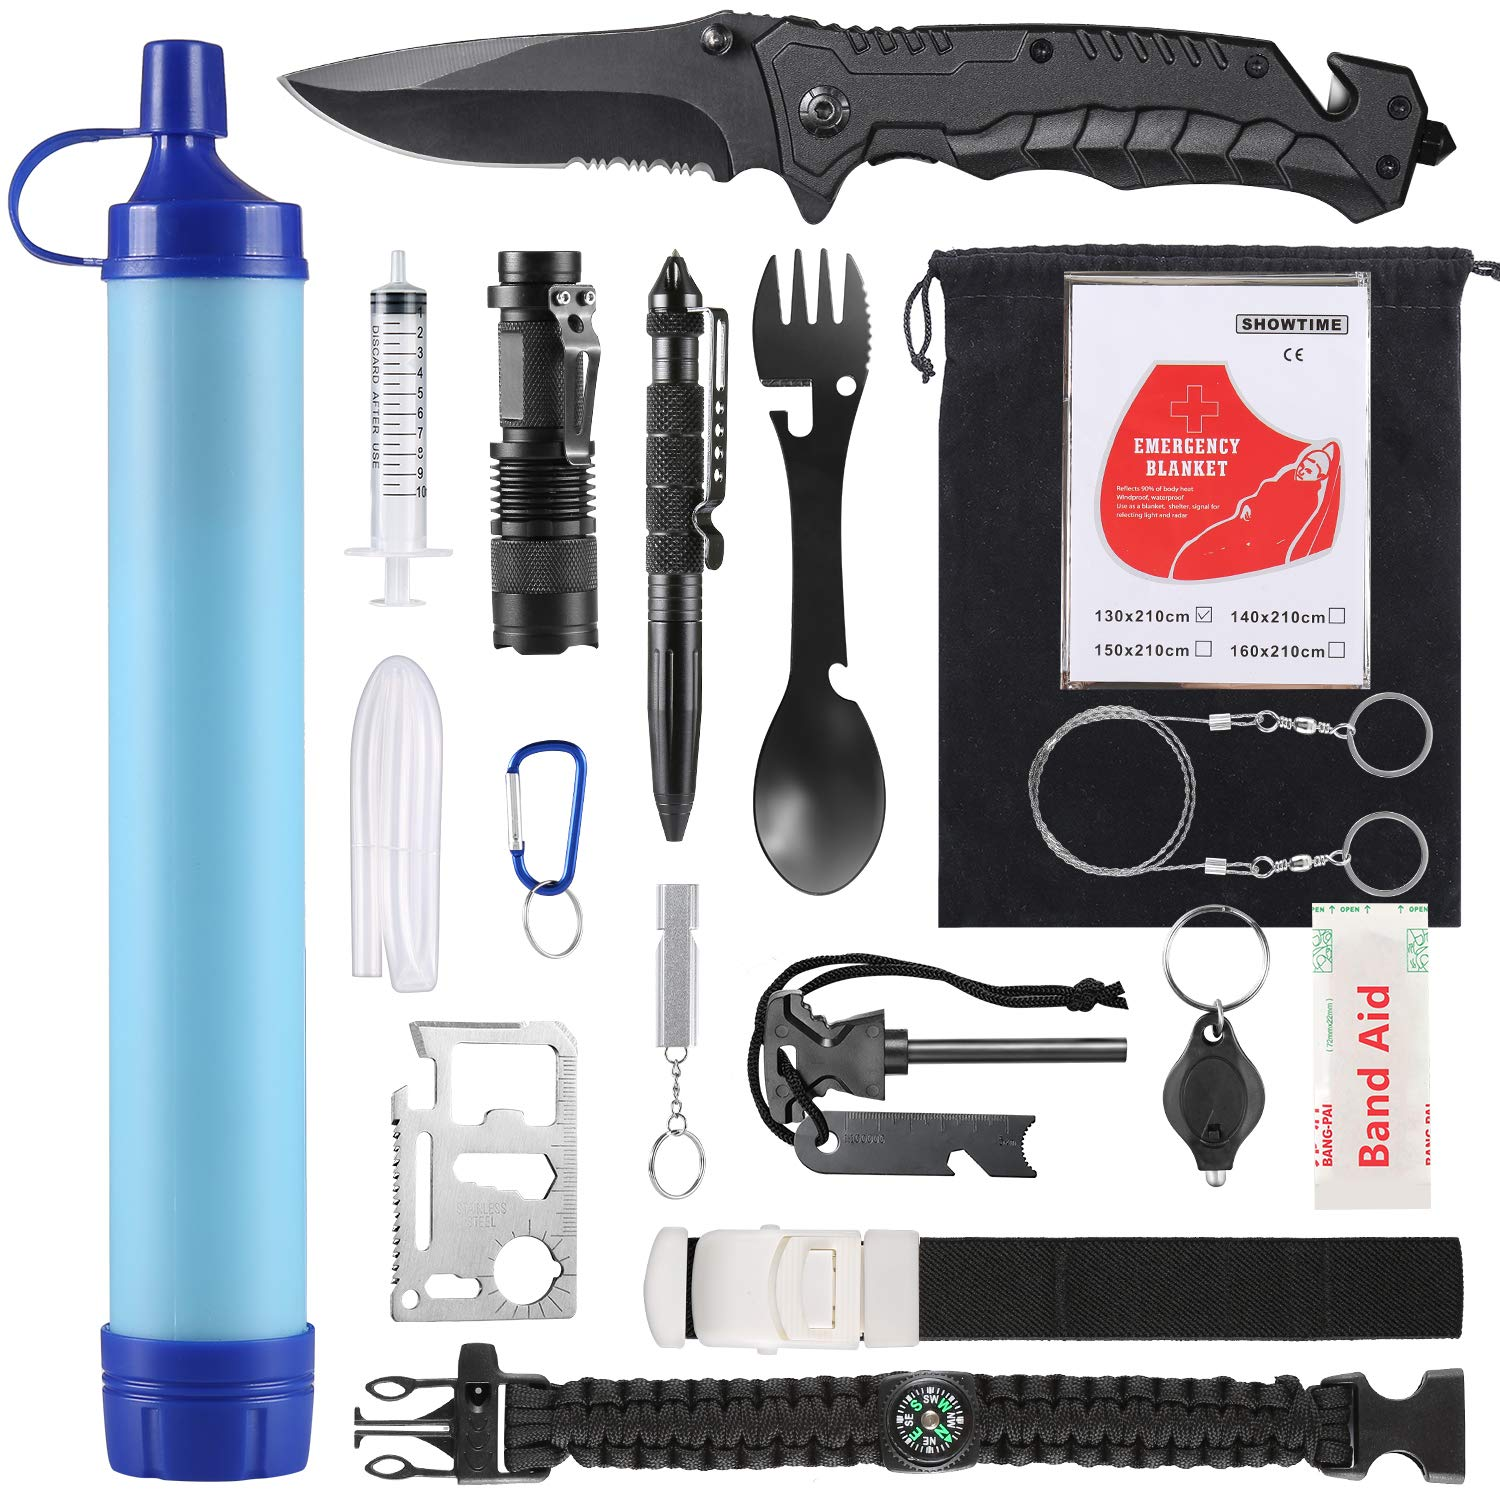 SUPOLOGY Emergency Survival Gear Kits -23 in 1 Outdoor Tactical Tools for Hiking/Adventures/Climbing Necessary - Water Filter,Flashlight,Tactical Pen,Spoon Fork,Survival Bracelet, Fire Starter ect. by SUPOLOGY